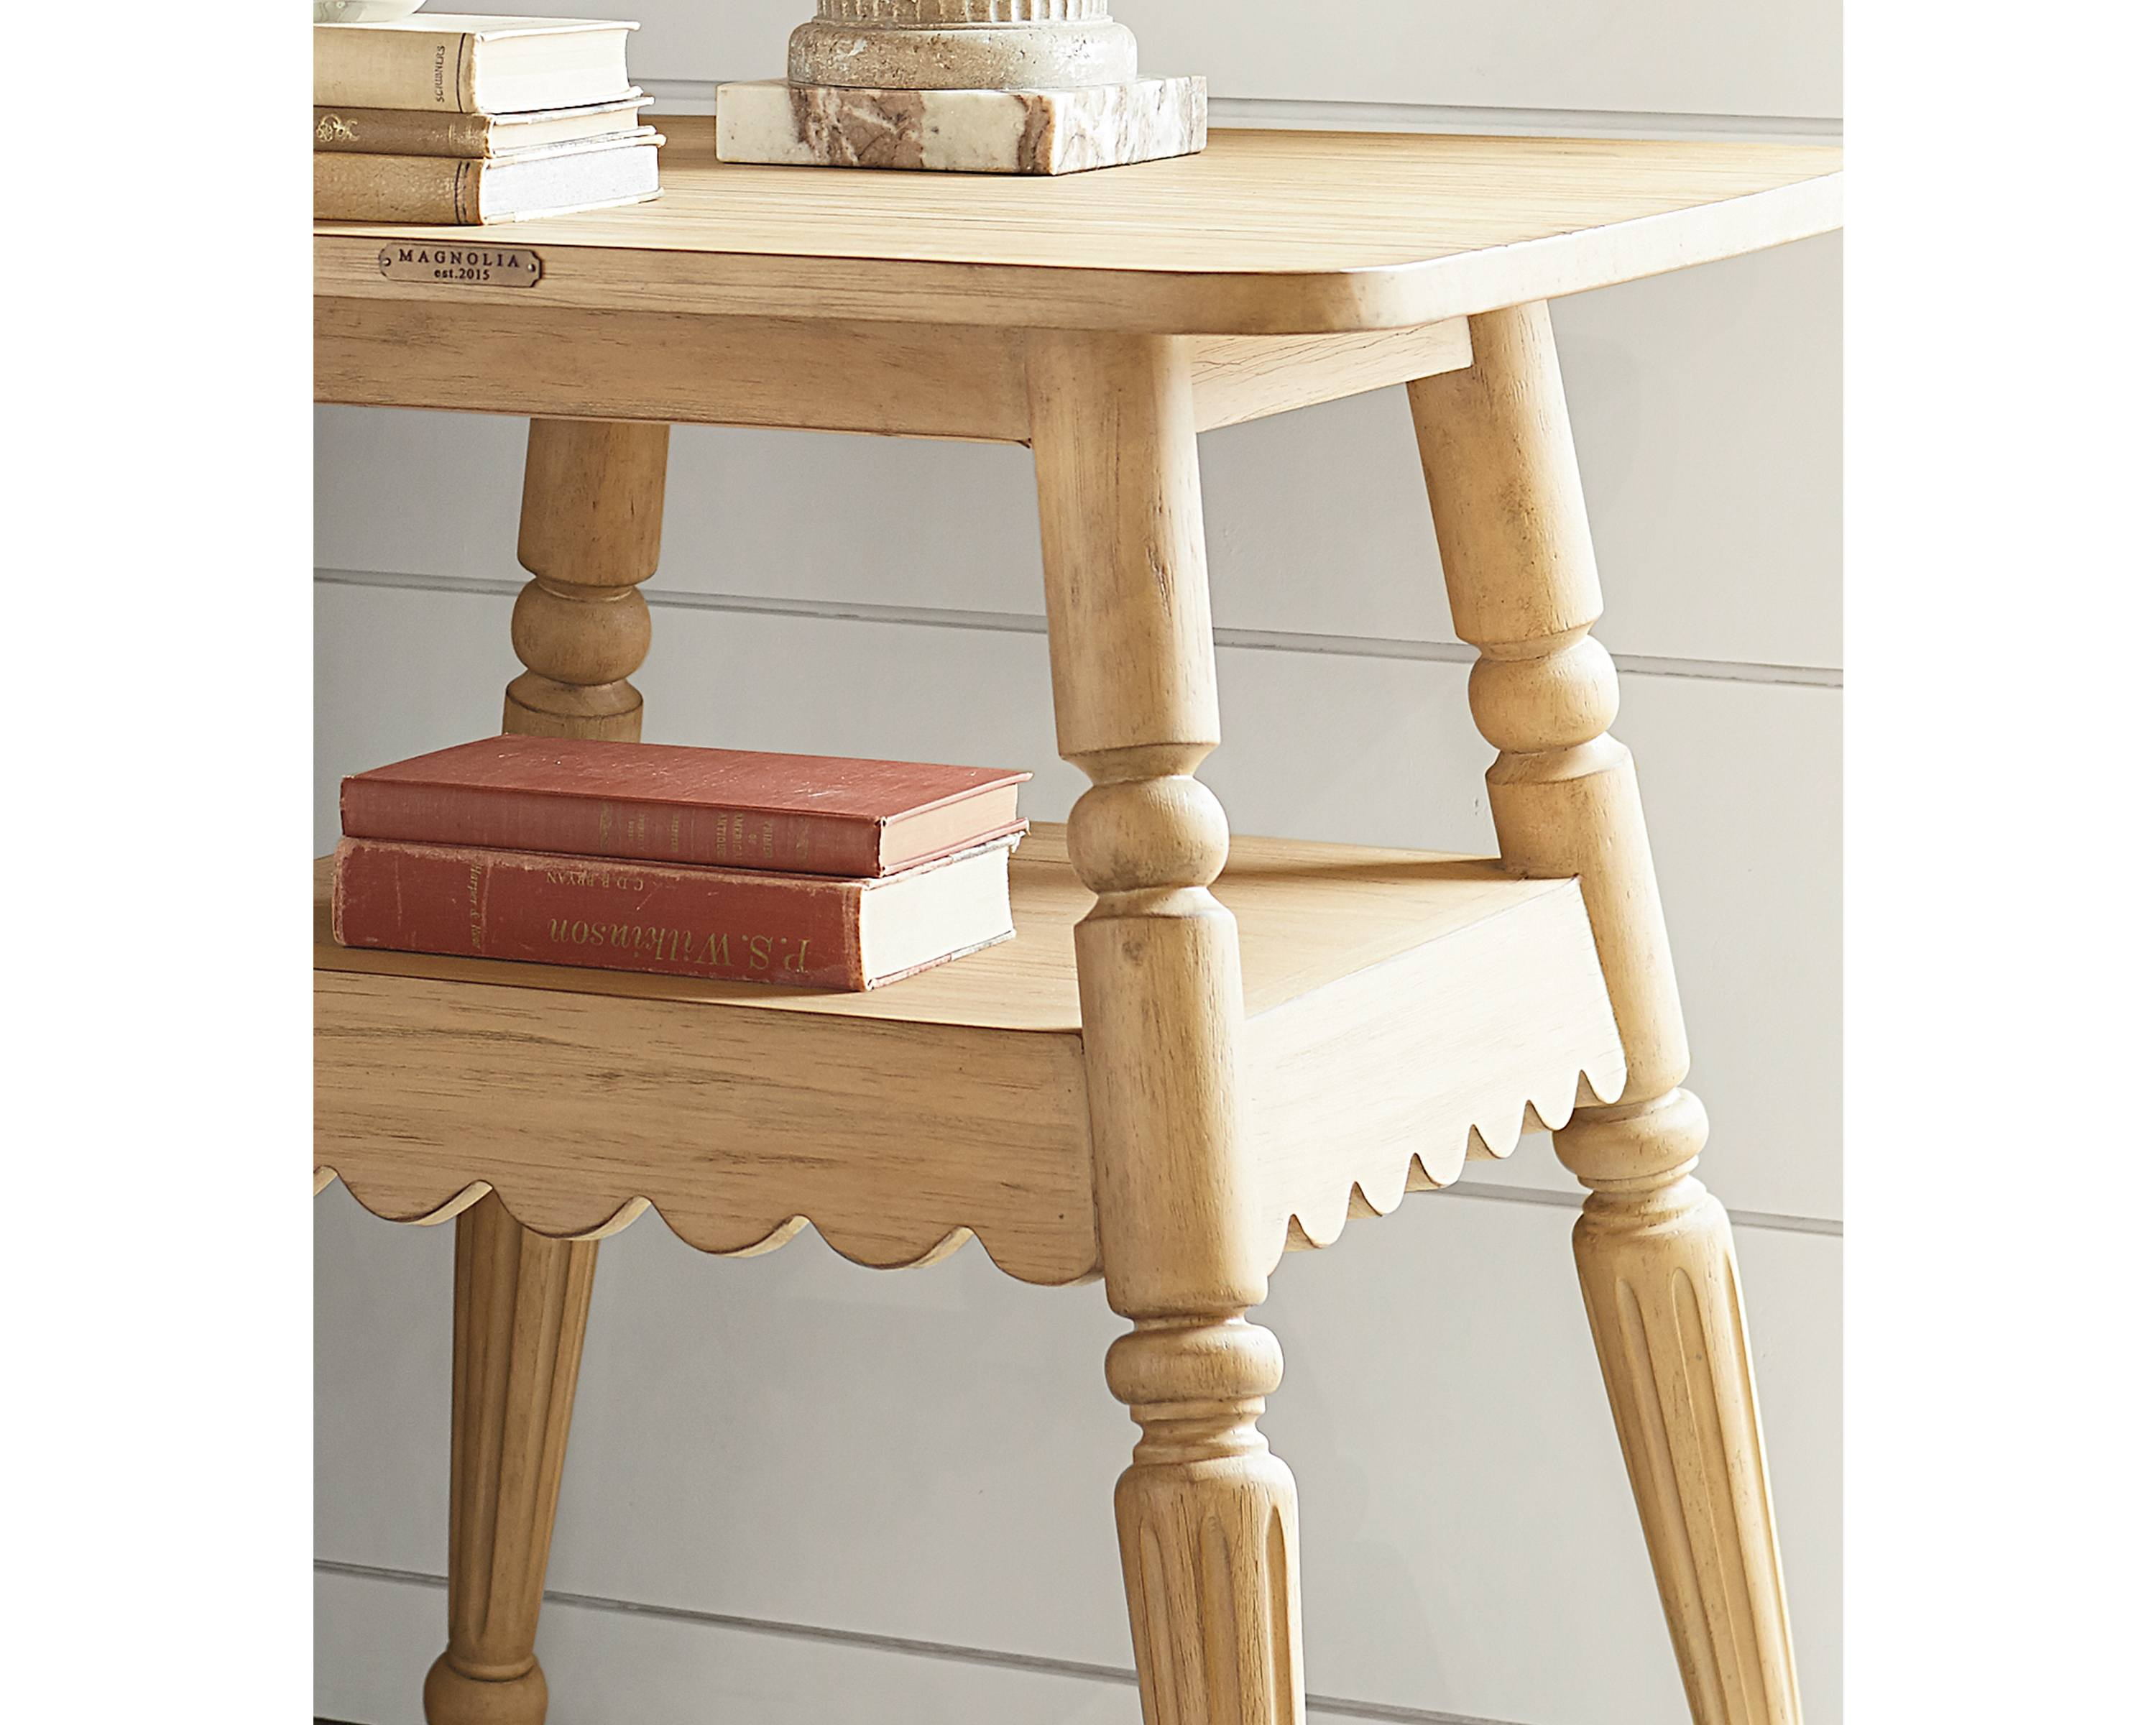 blithe accent table magnolia home frm detail corner for dining room our quaint wheat tastefully used end the living well bedside its smooth round corners and porcelain jar lamp